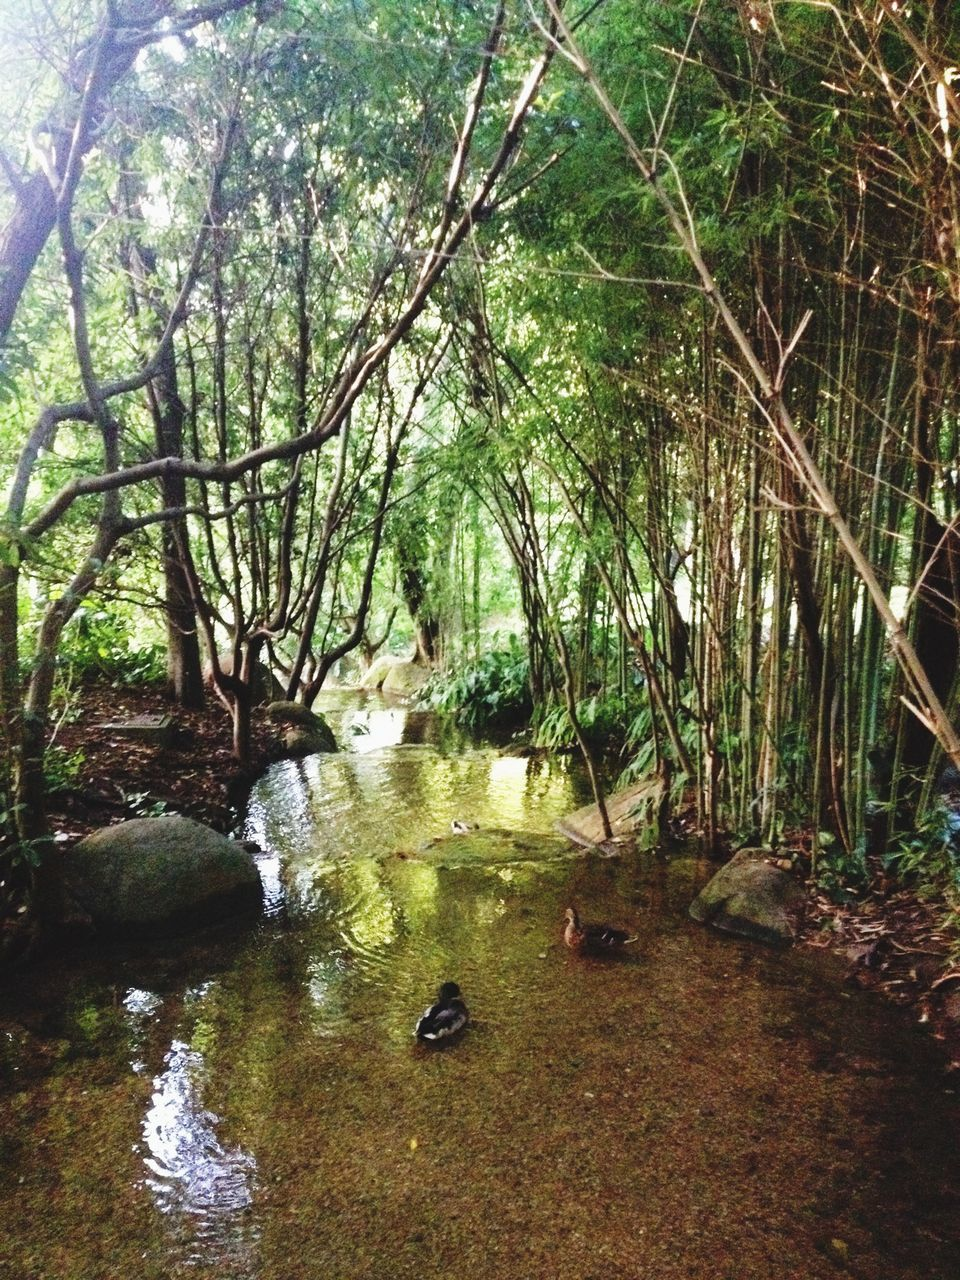 water, nature, tree, tranquility, no people, tranquil scene, forest, beauty in nature, scenics, river, day, growth, outdoors, landscape, grass, branch, animal themes